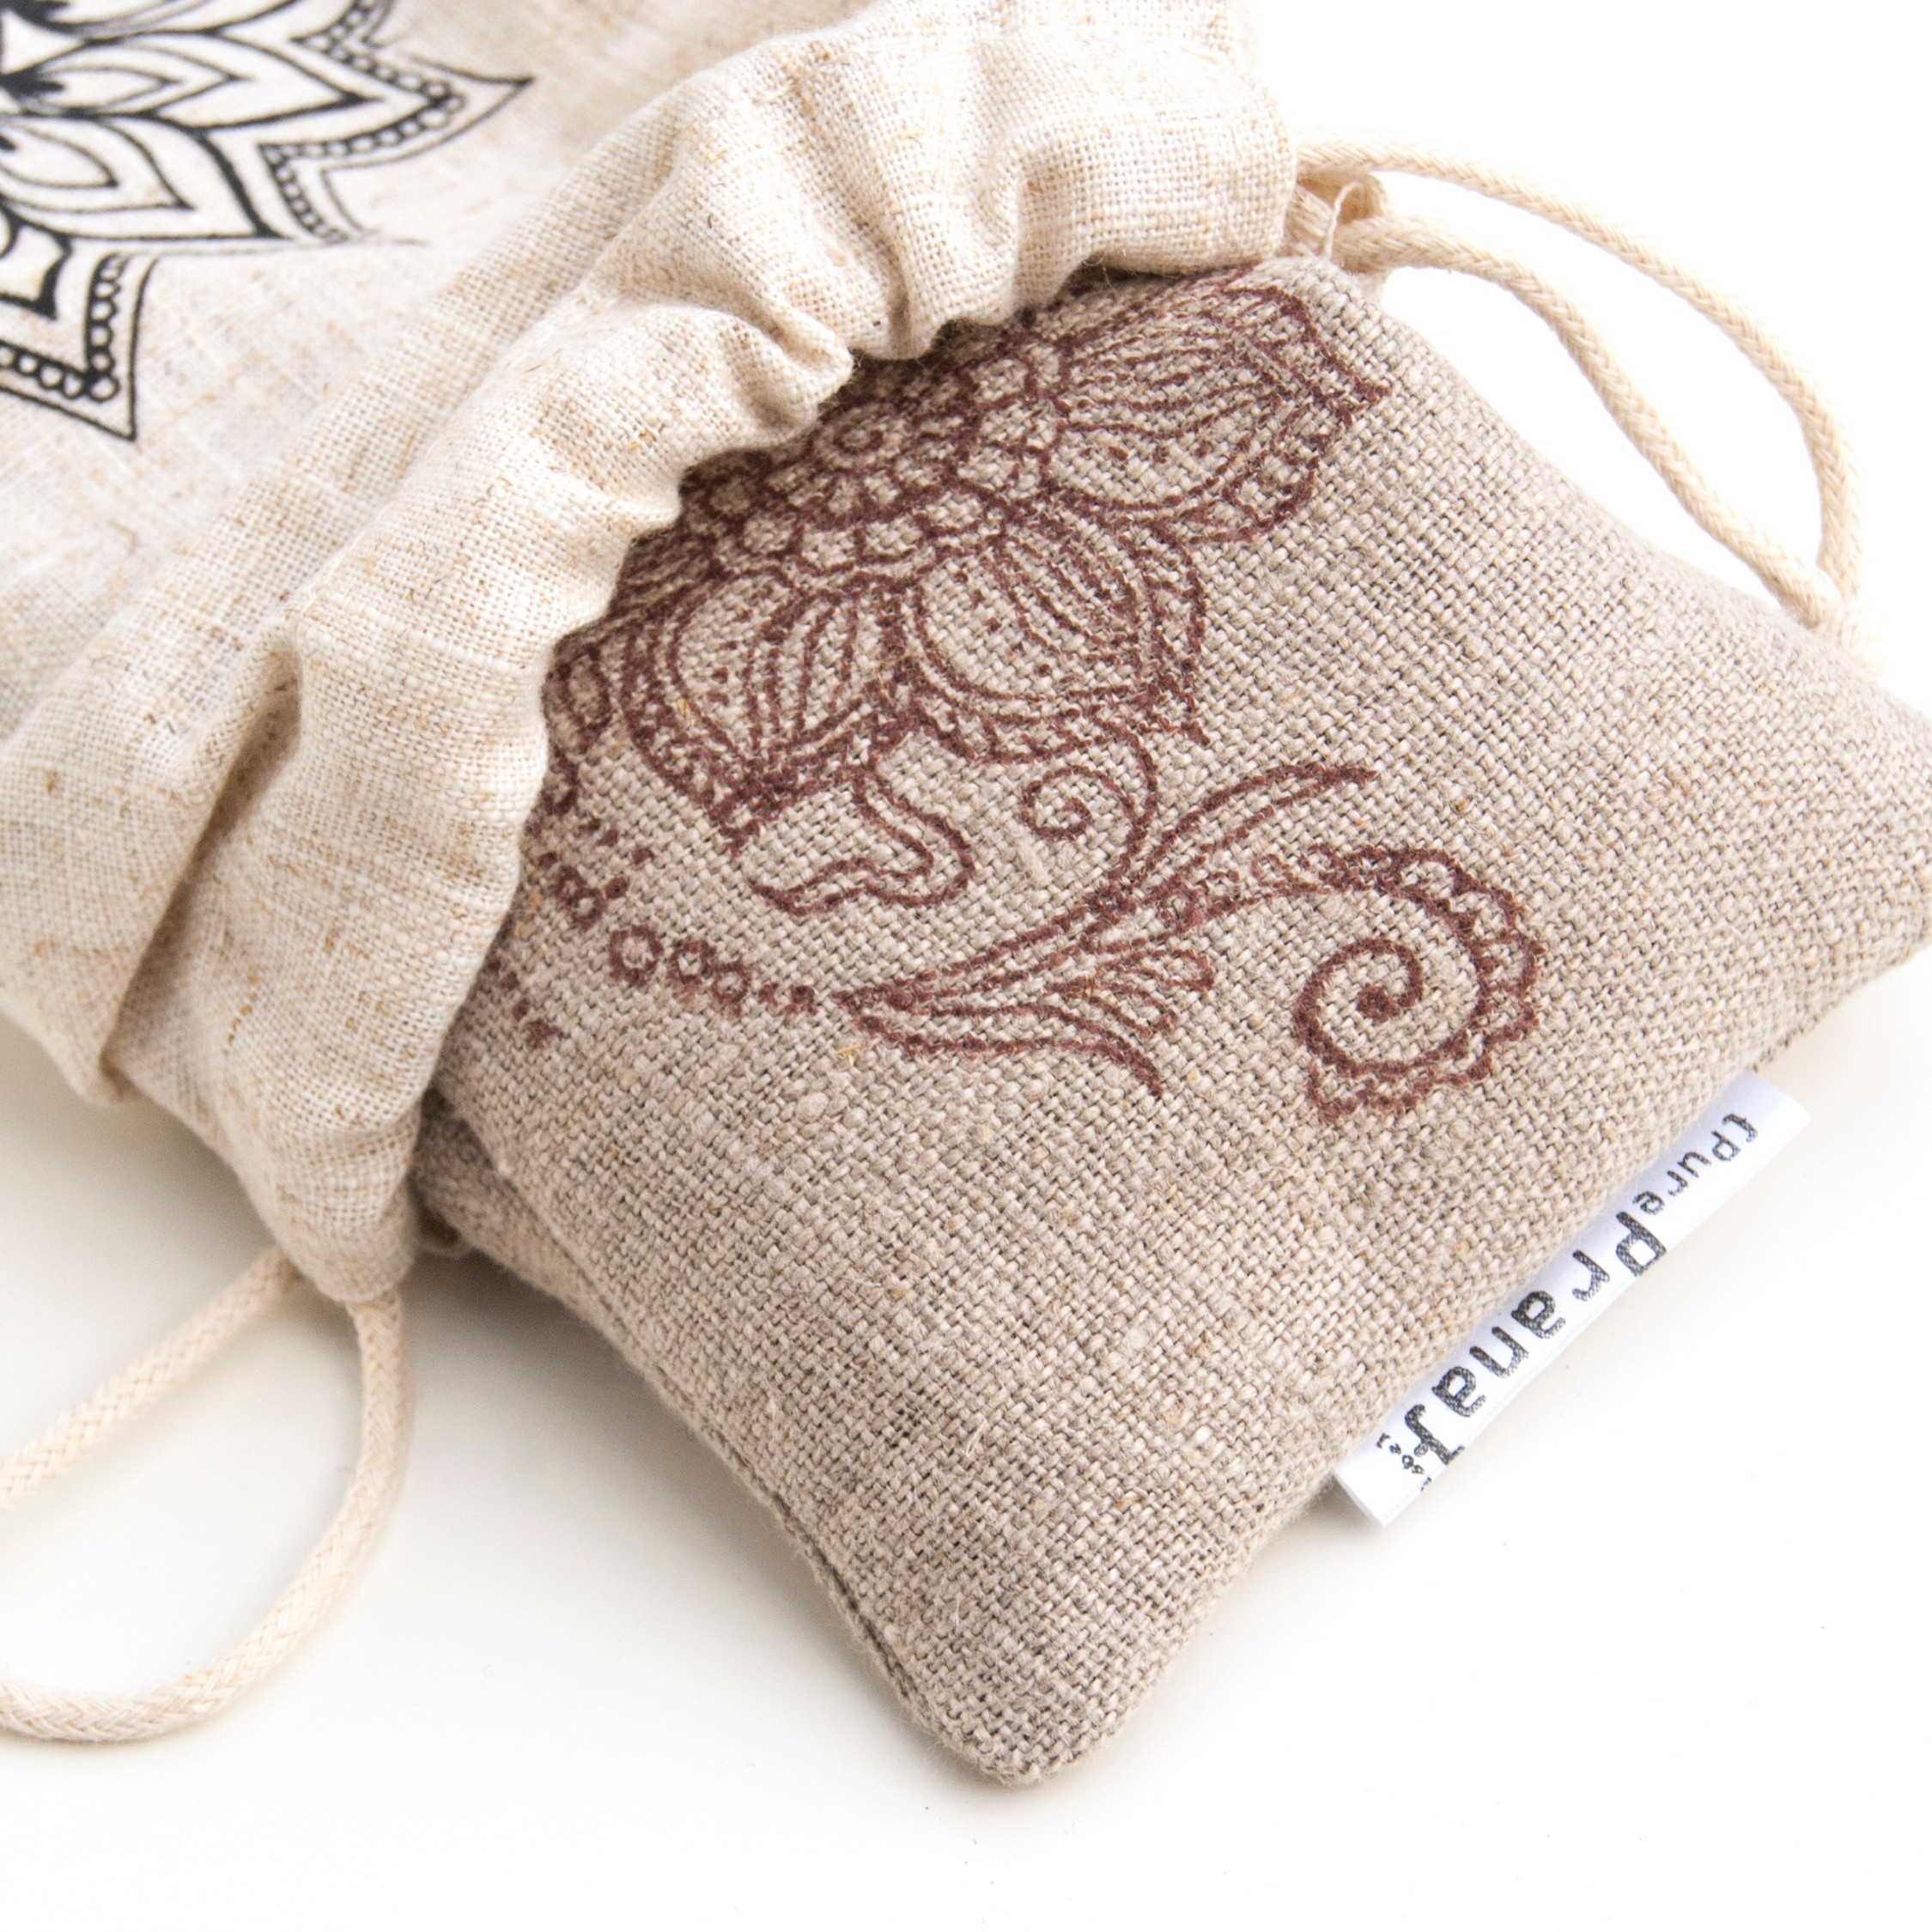 Yoga eye pillow flax linen